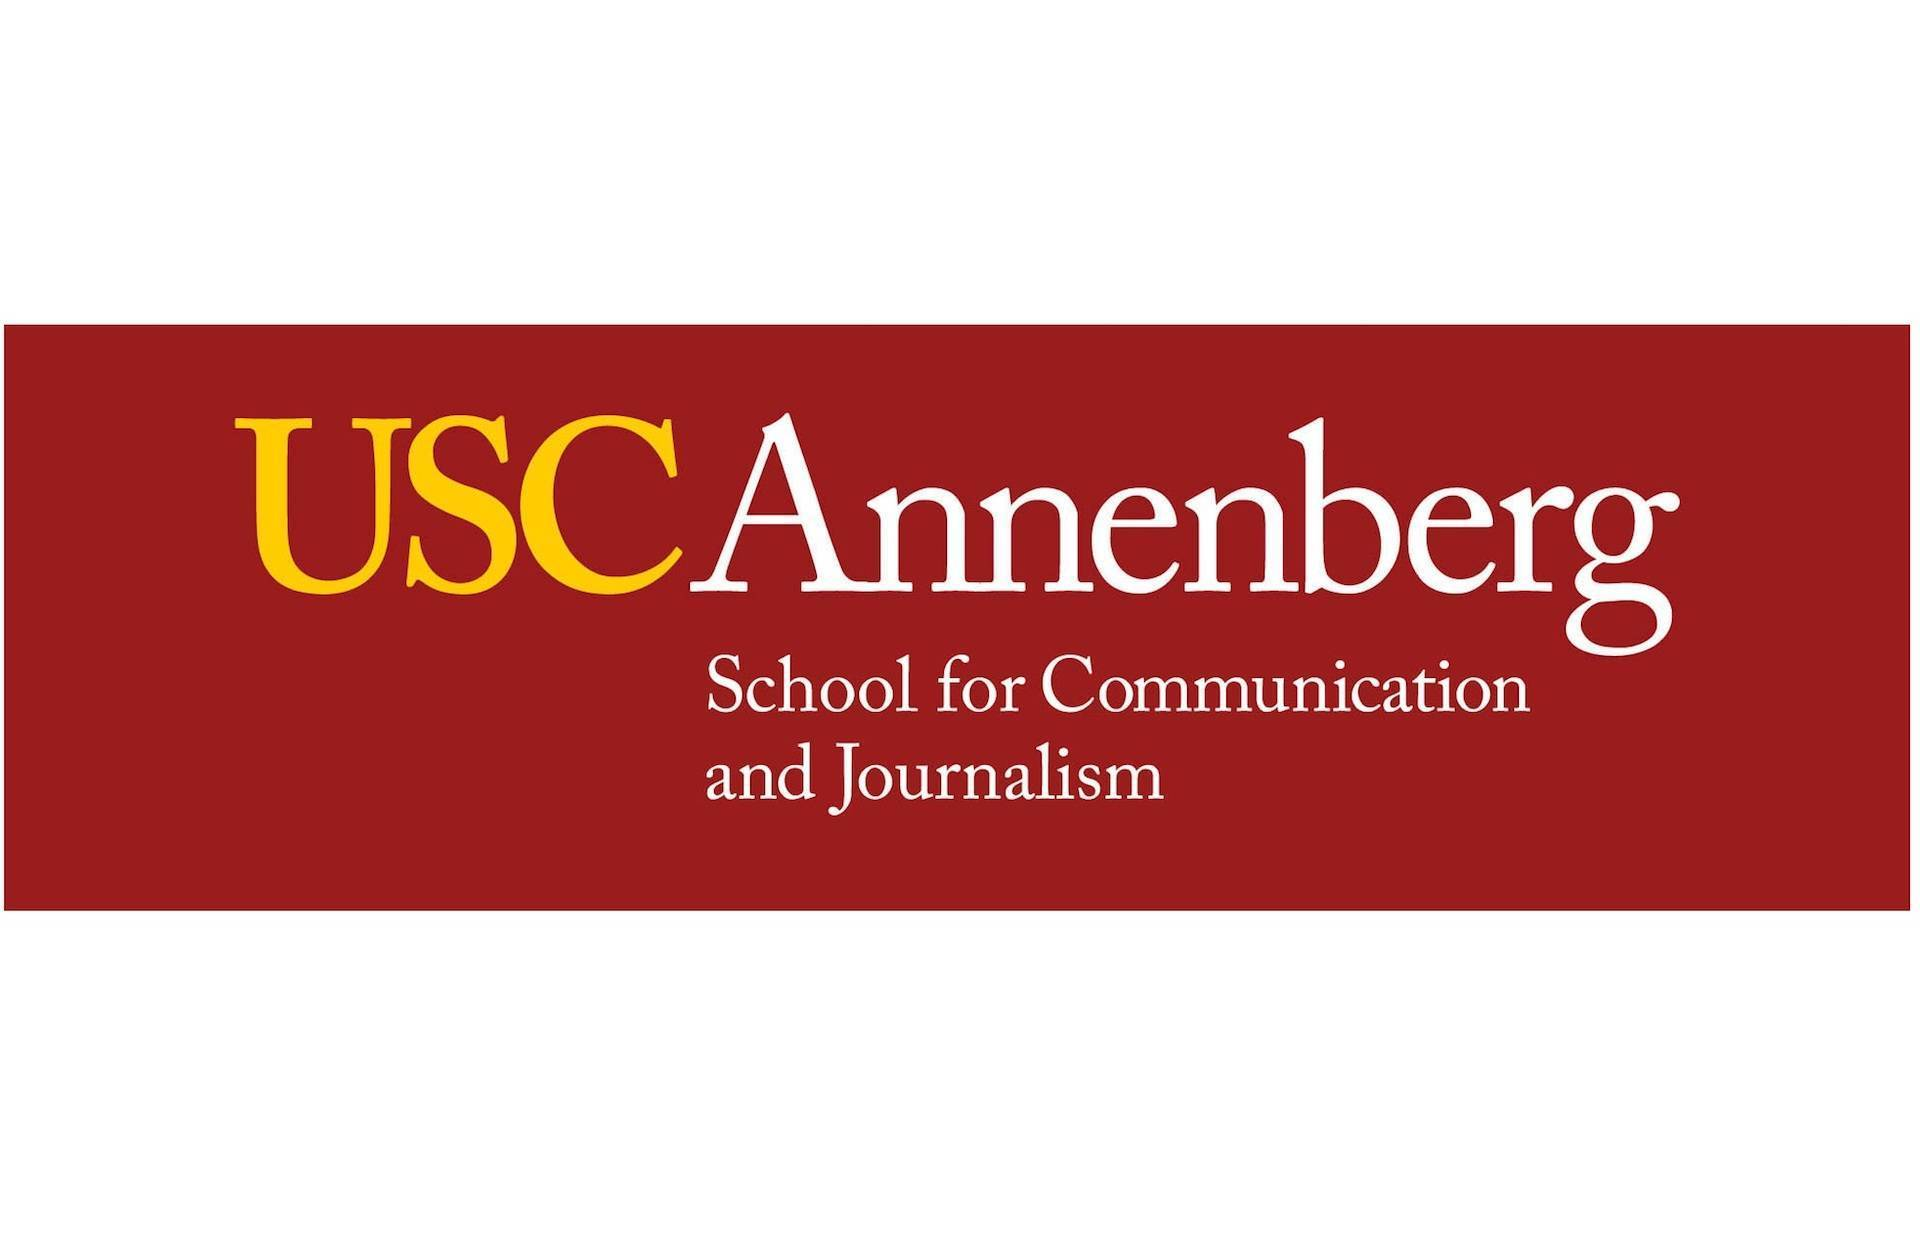 USC's Annenberg Media ~ A Classroom Brawl Sparks a Debate Over Student-Teacher Conflicts